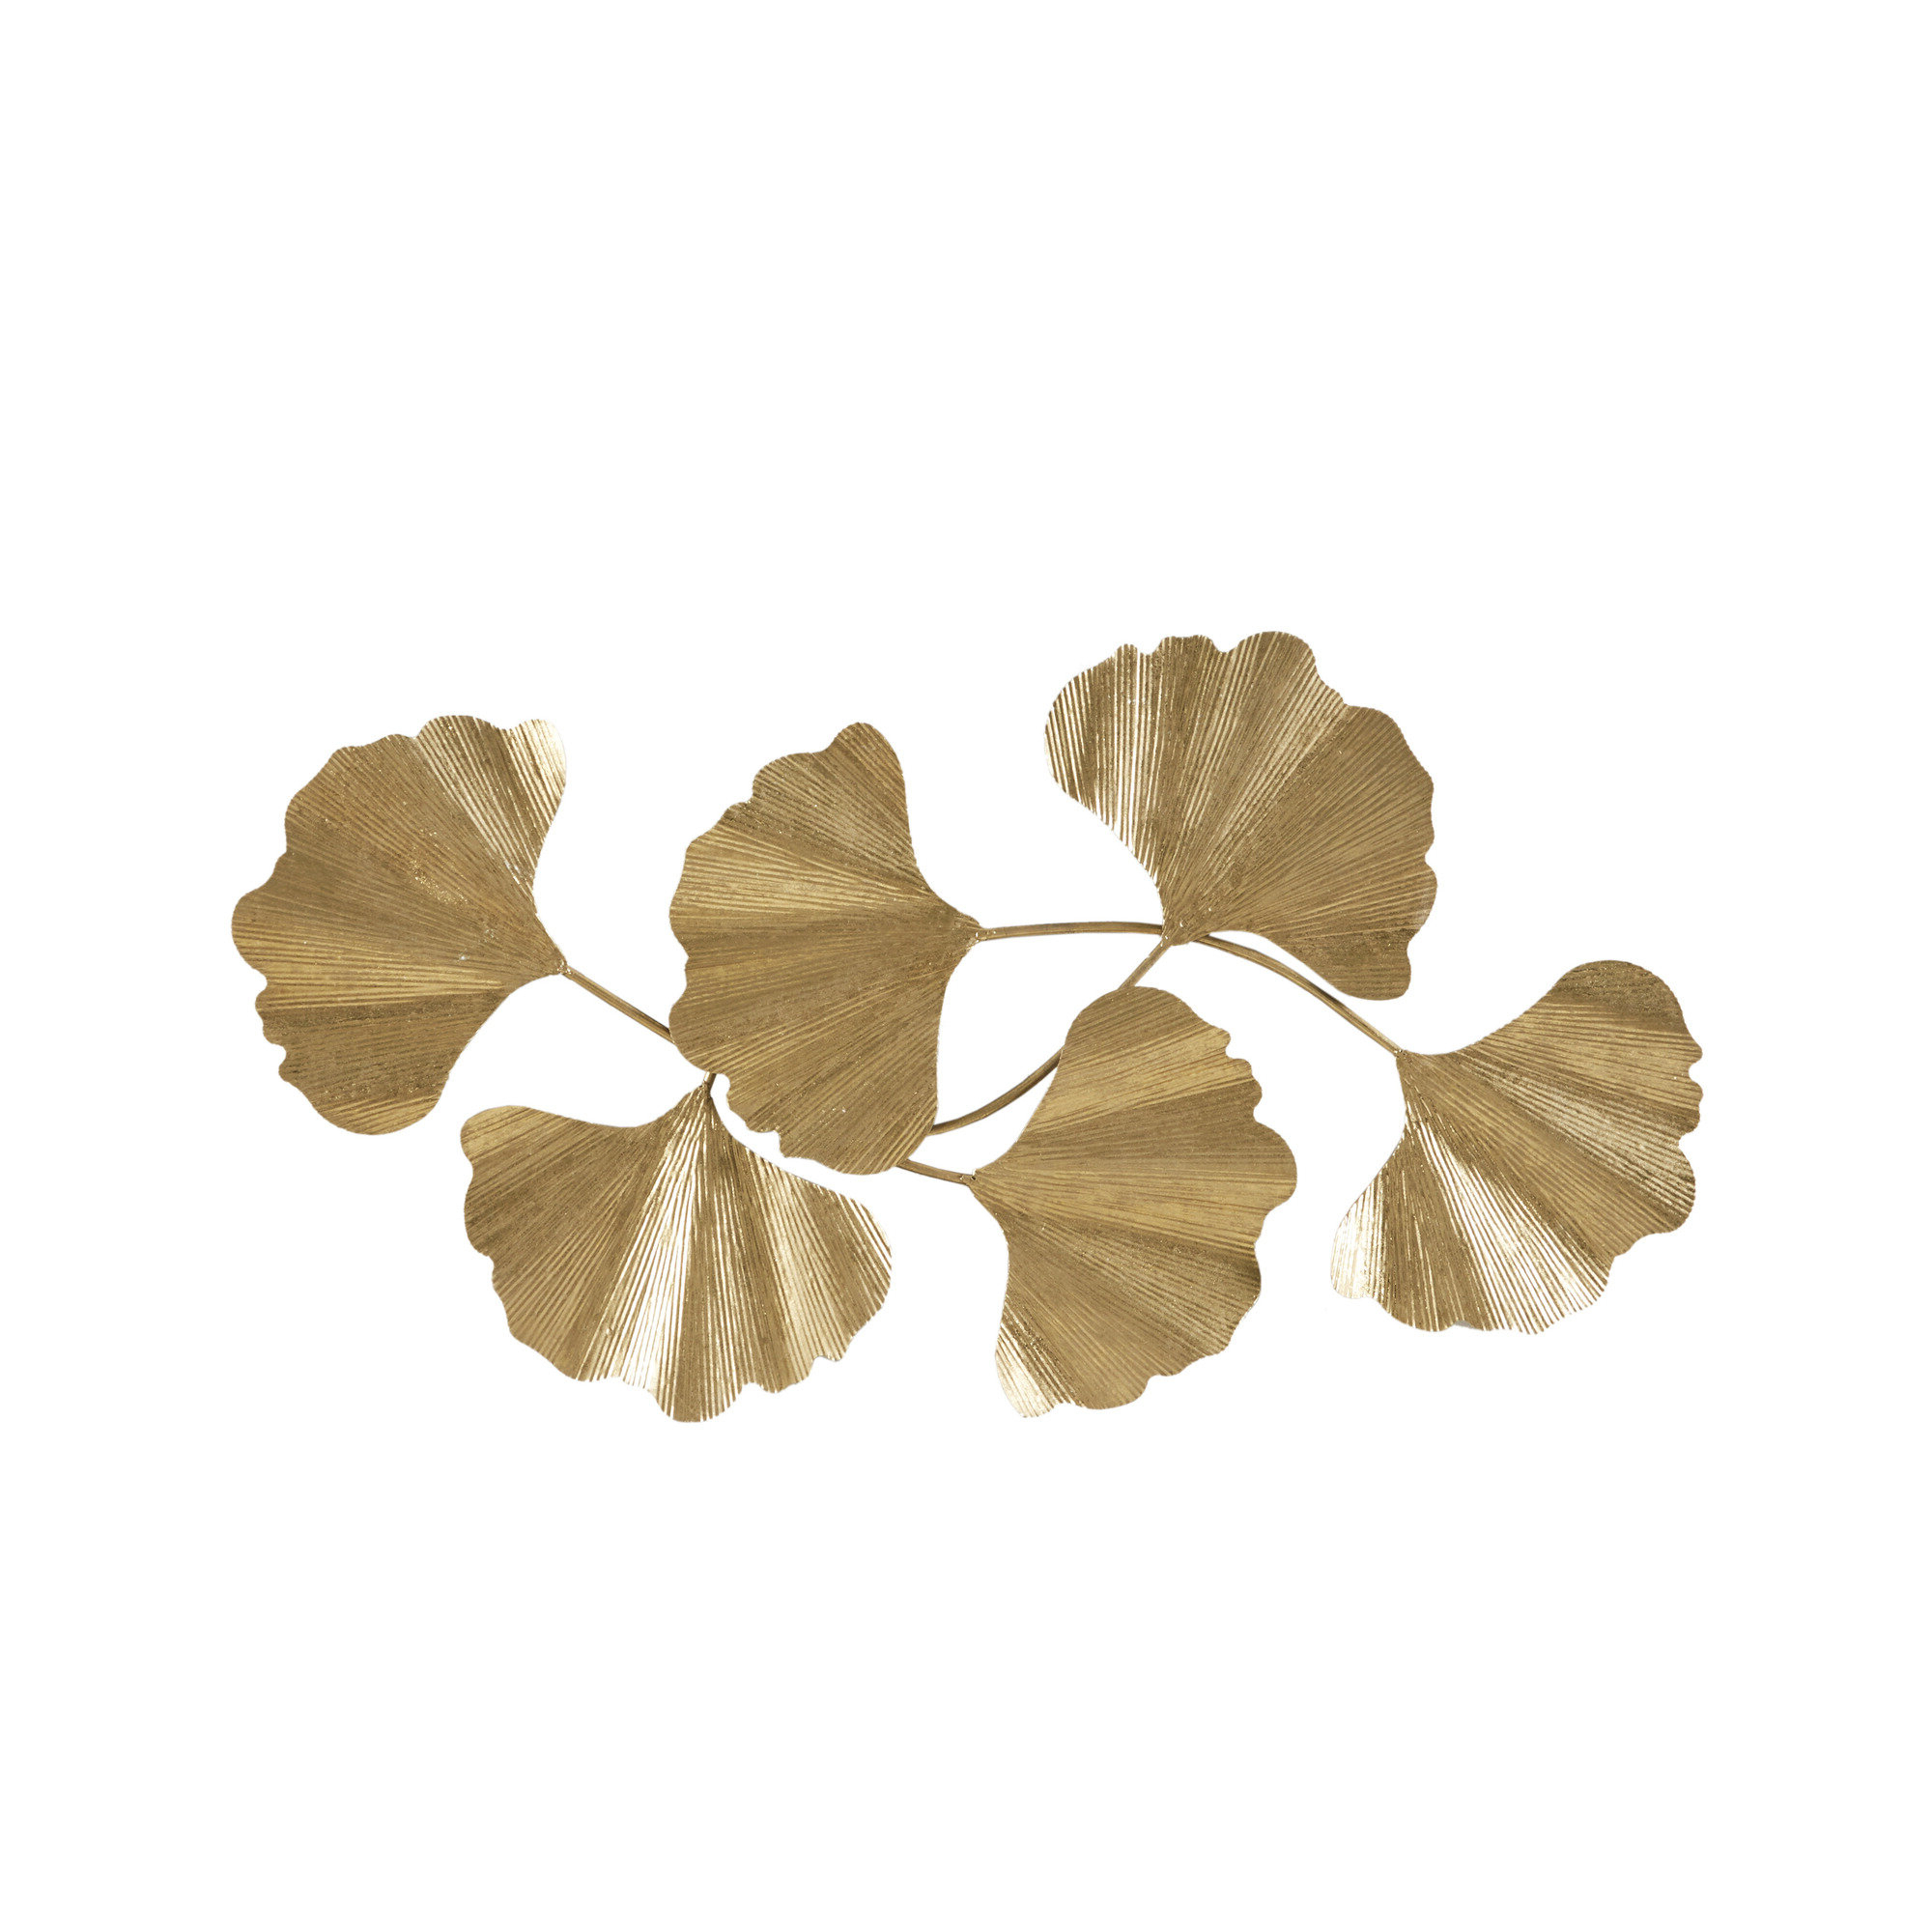 Faye Gold Foil Ginkgo Leaf Wall Art With Regard To Recent Ginkgo Leaf Metal Wall Décor By Winston Porter (View 13 of 20)